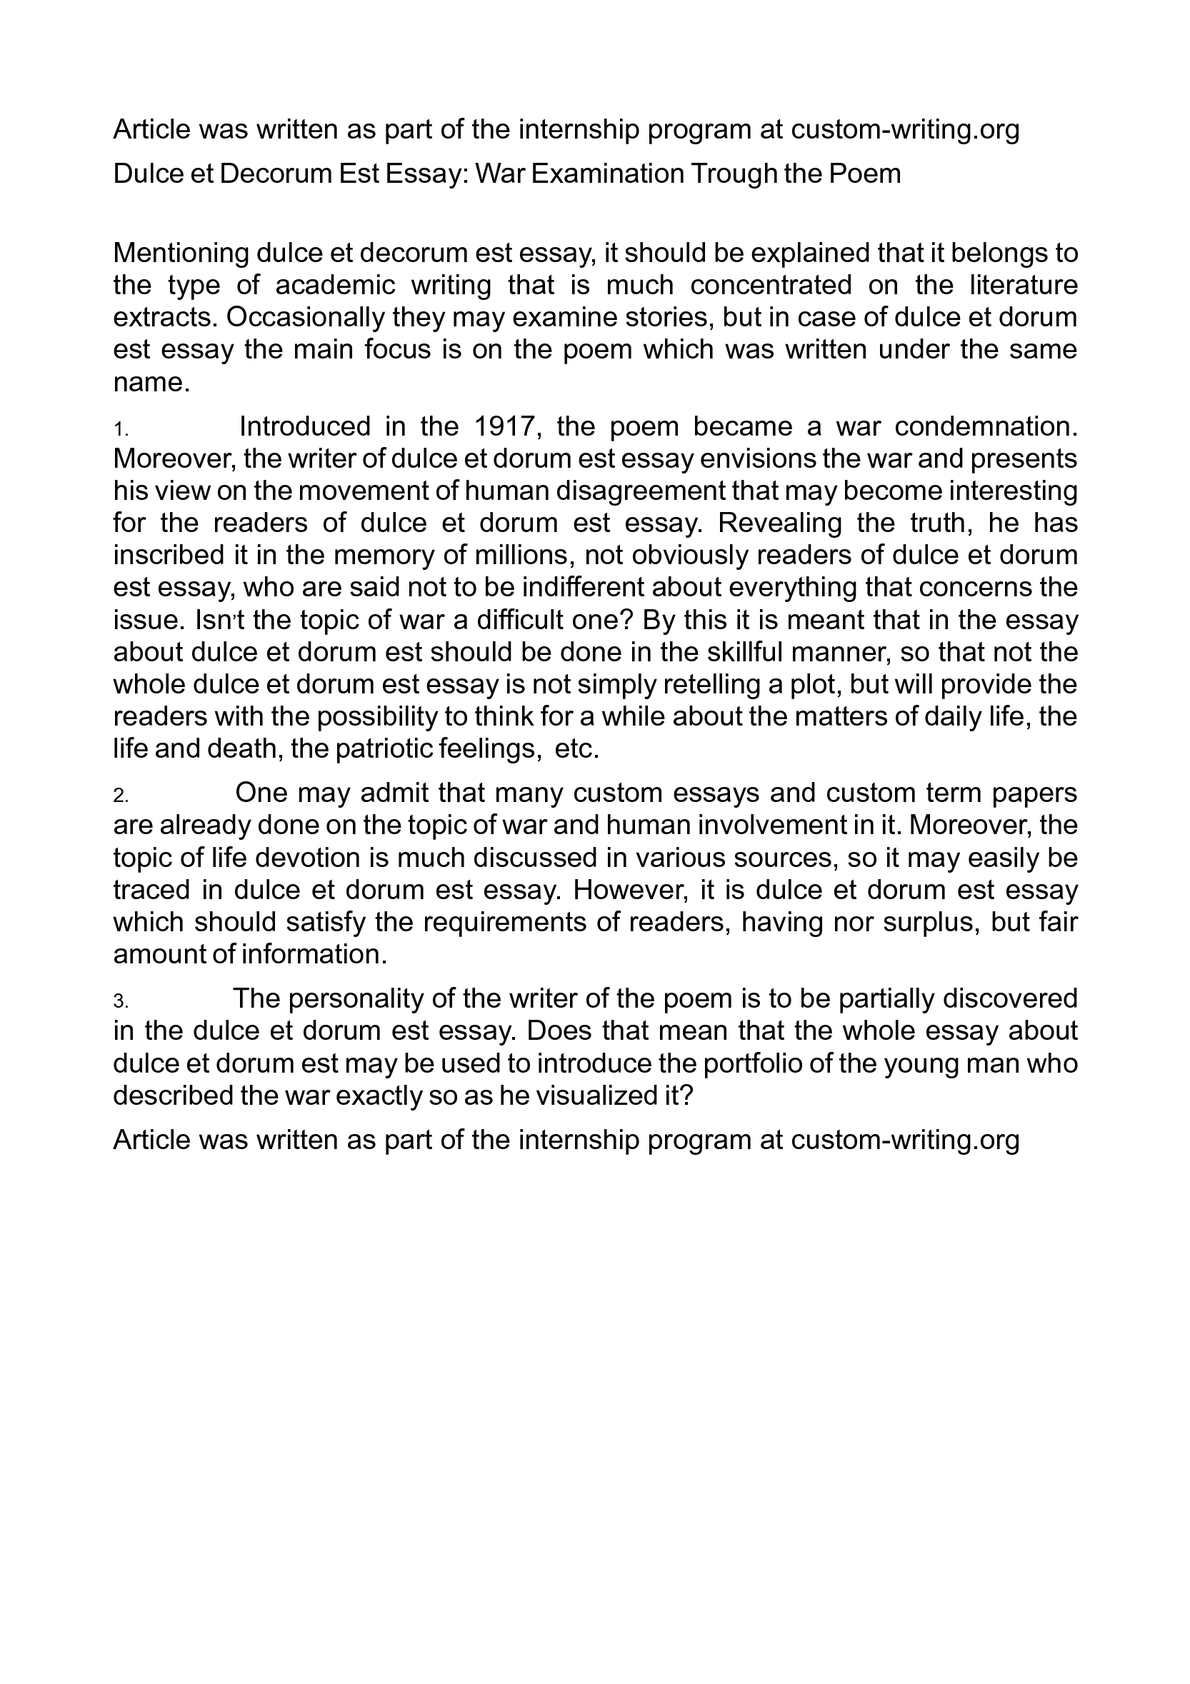 Thesis For A Narrative Essay  Essay For Students Of High School also Federalism Essay Paper Calamo  Dulce Et Decorum Est Essay War Examination Trough The Poem Compare And Contrast High School And College Essay